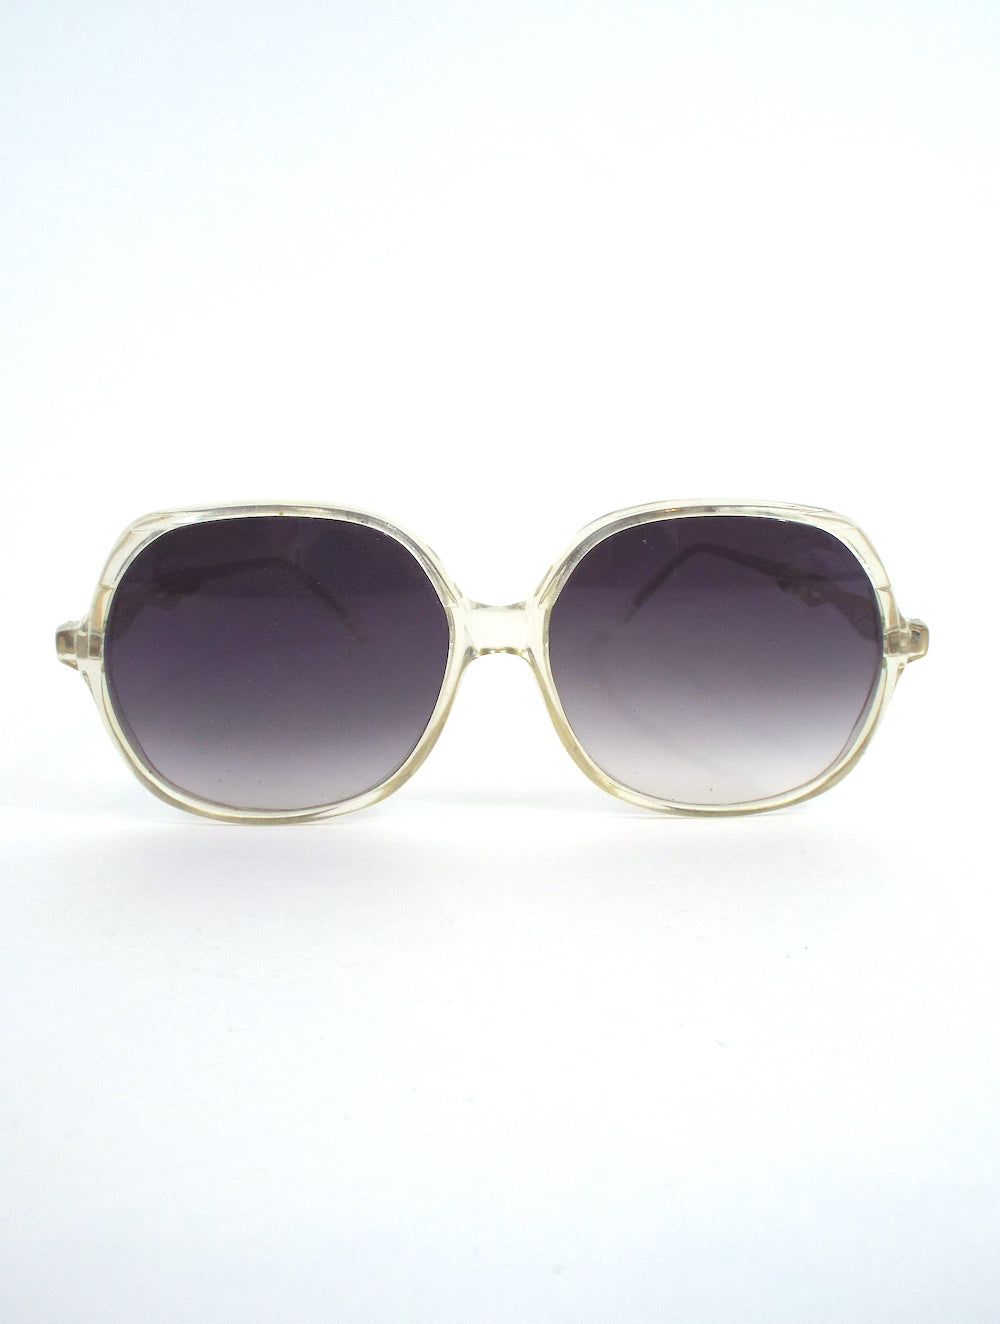 Vintage 80s Large Round Decorative Gold Arm Sunglasses